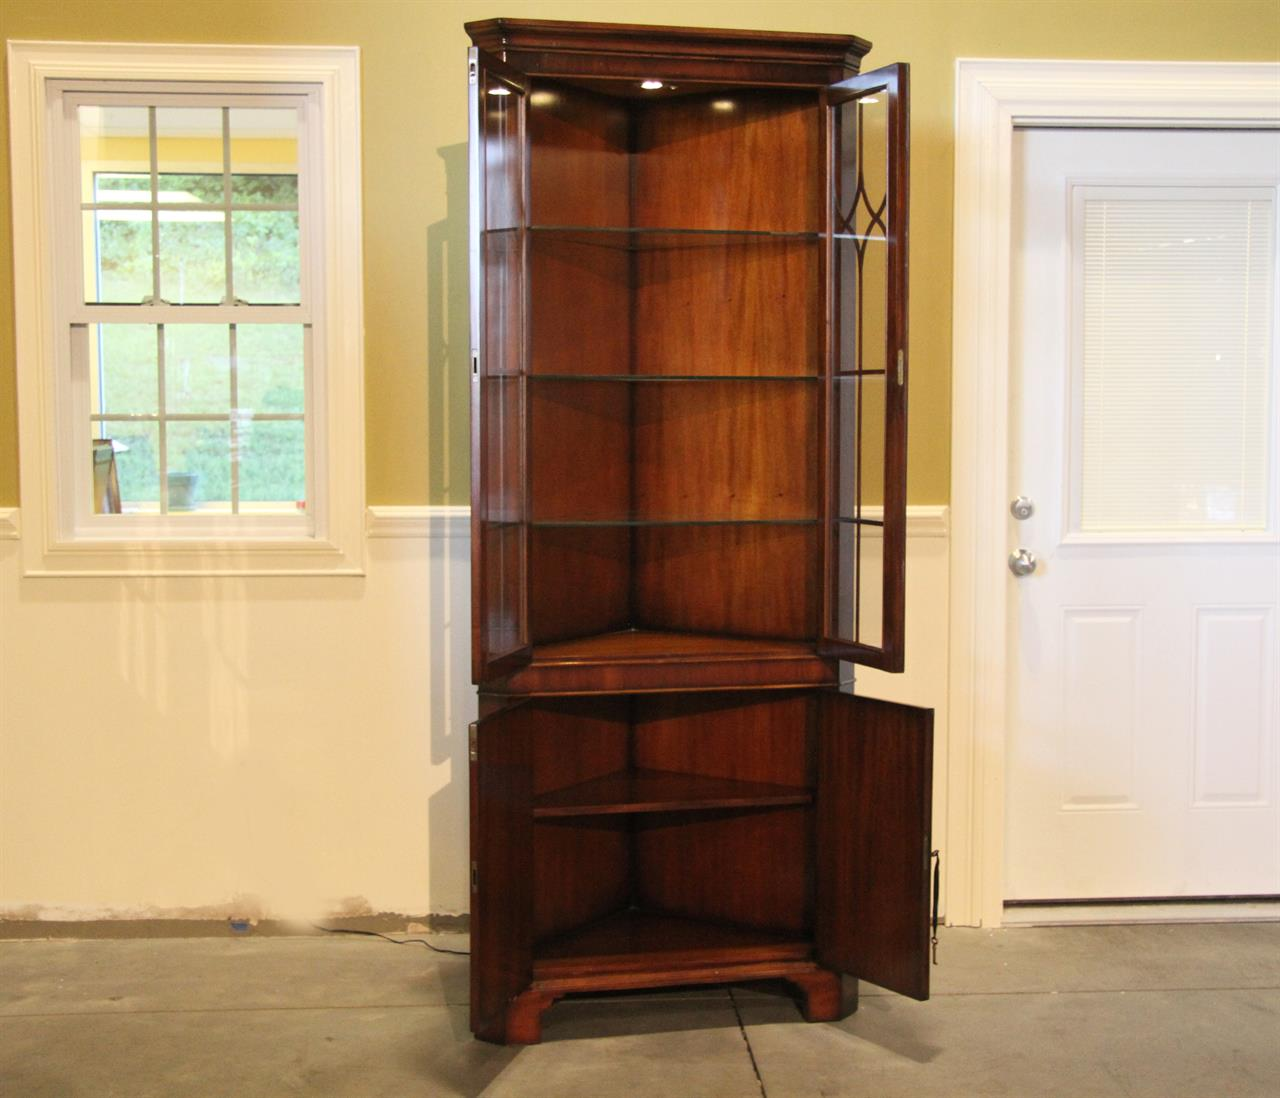 Delicieux Mahogany Corner China Cabinet With Glass Shelves